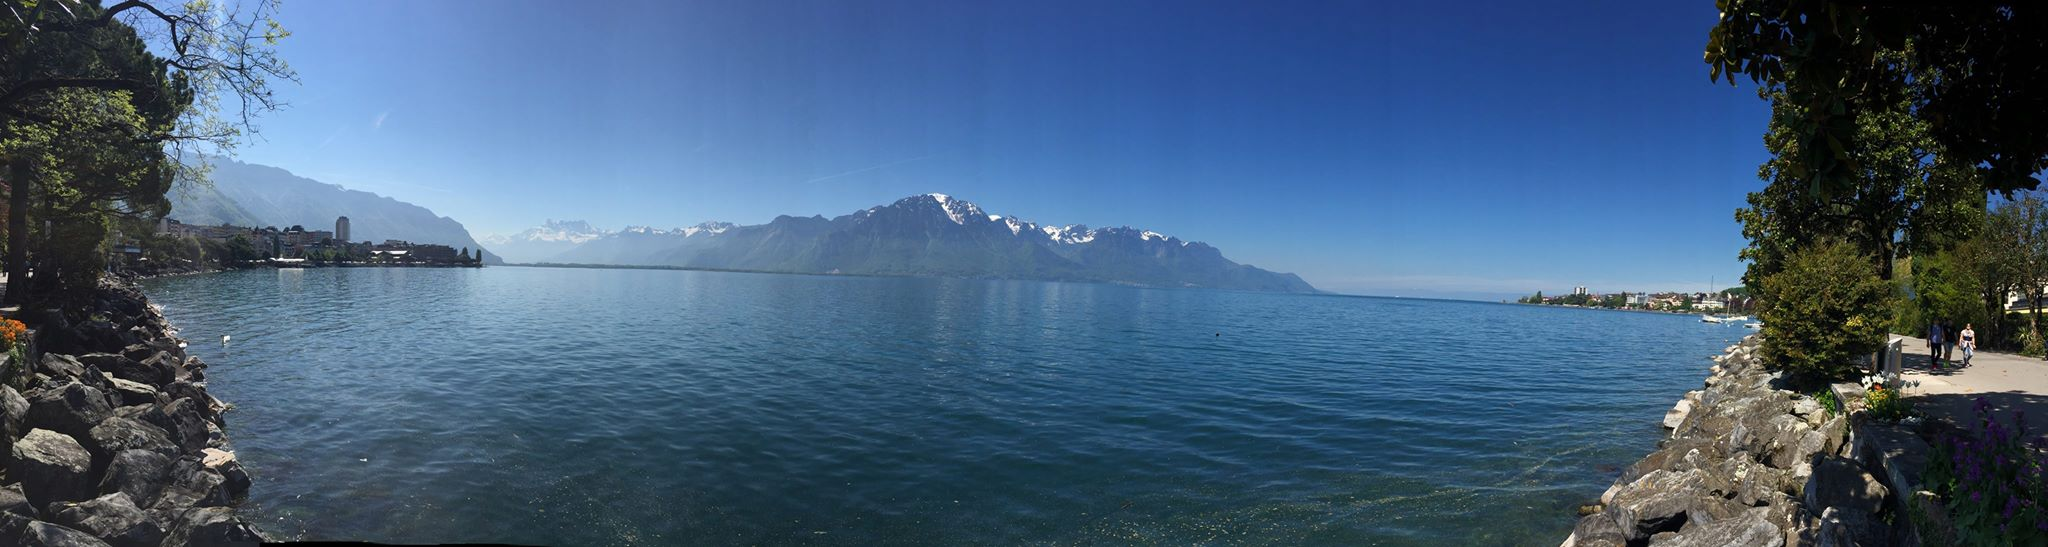 Another Great Meeting in Montreux